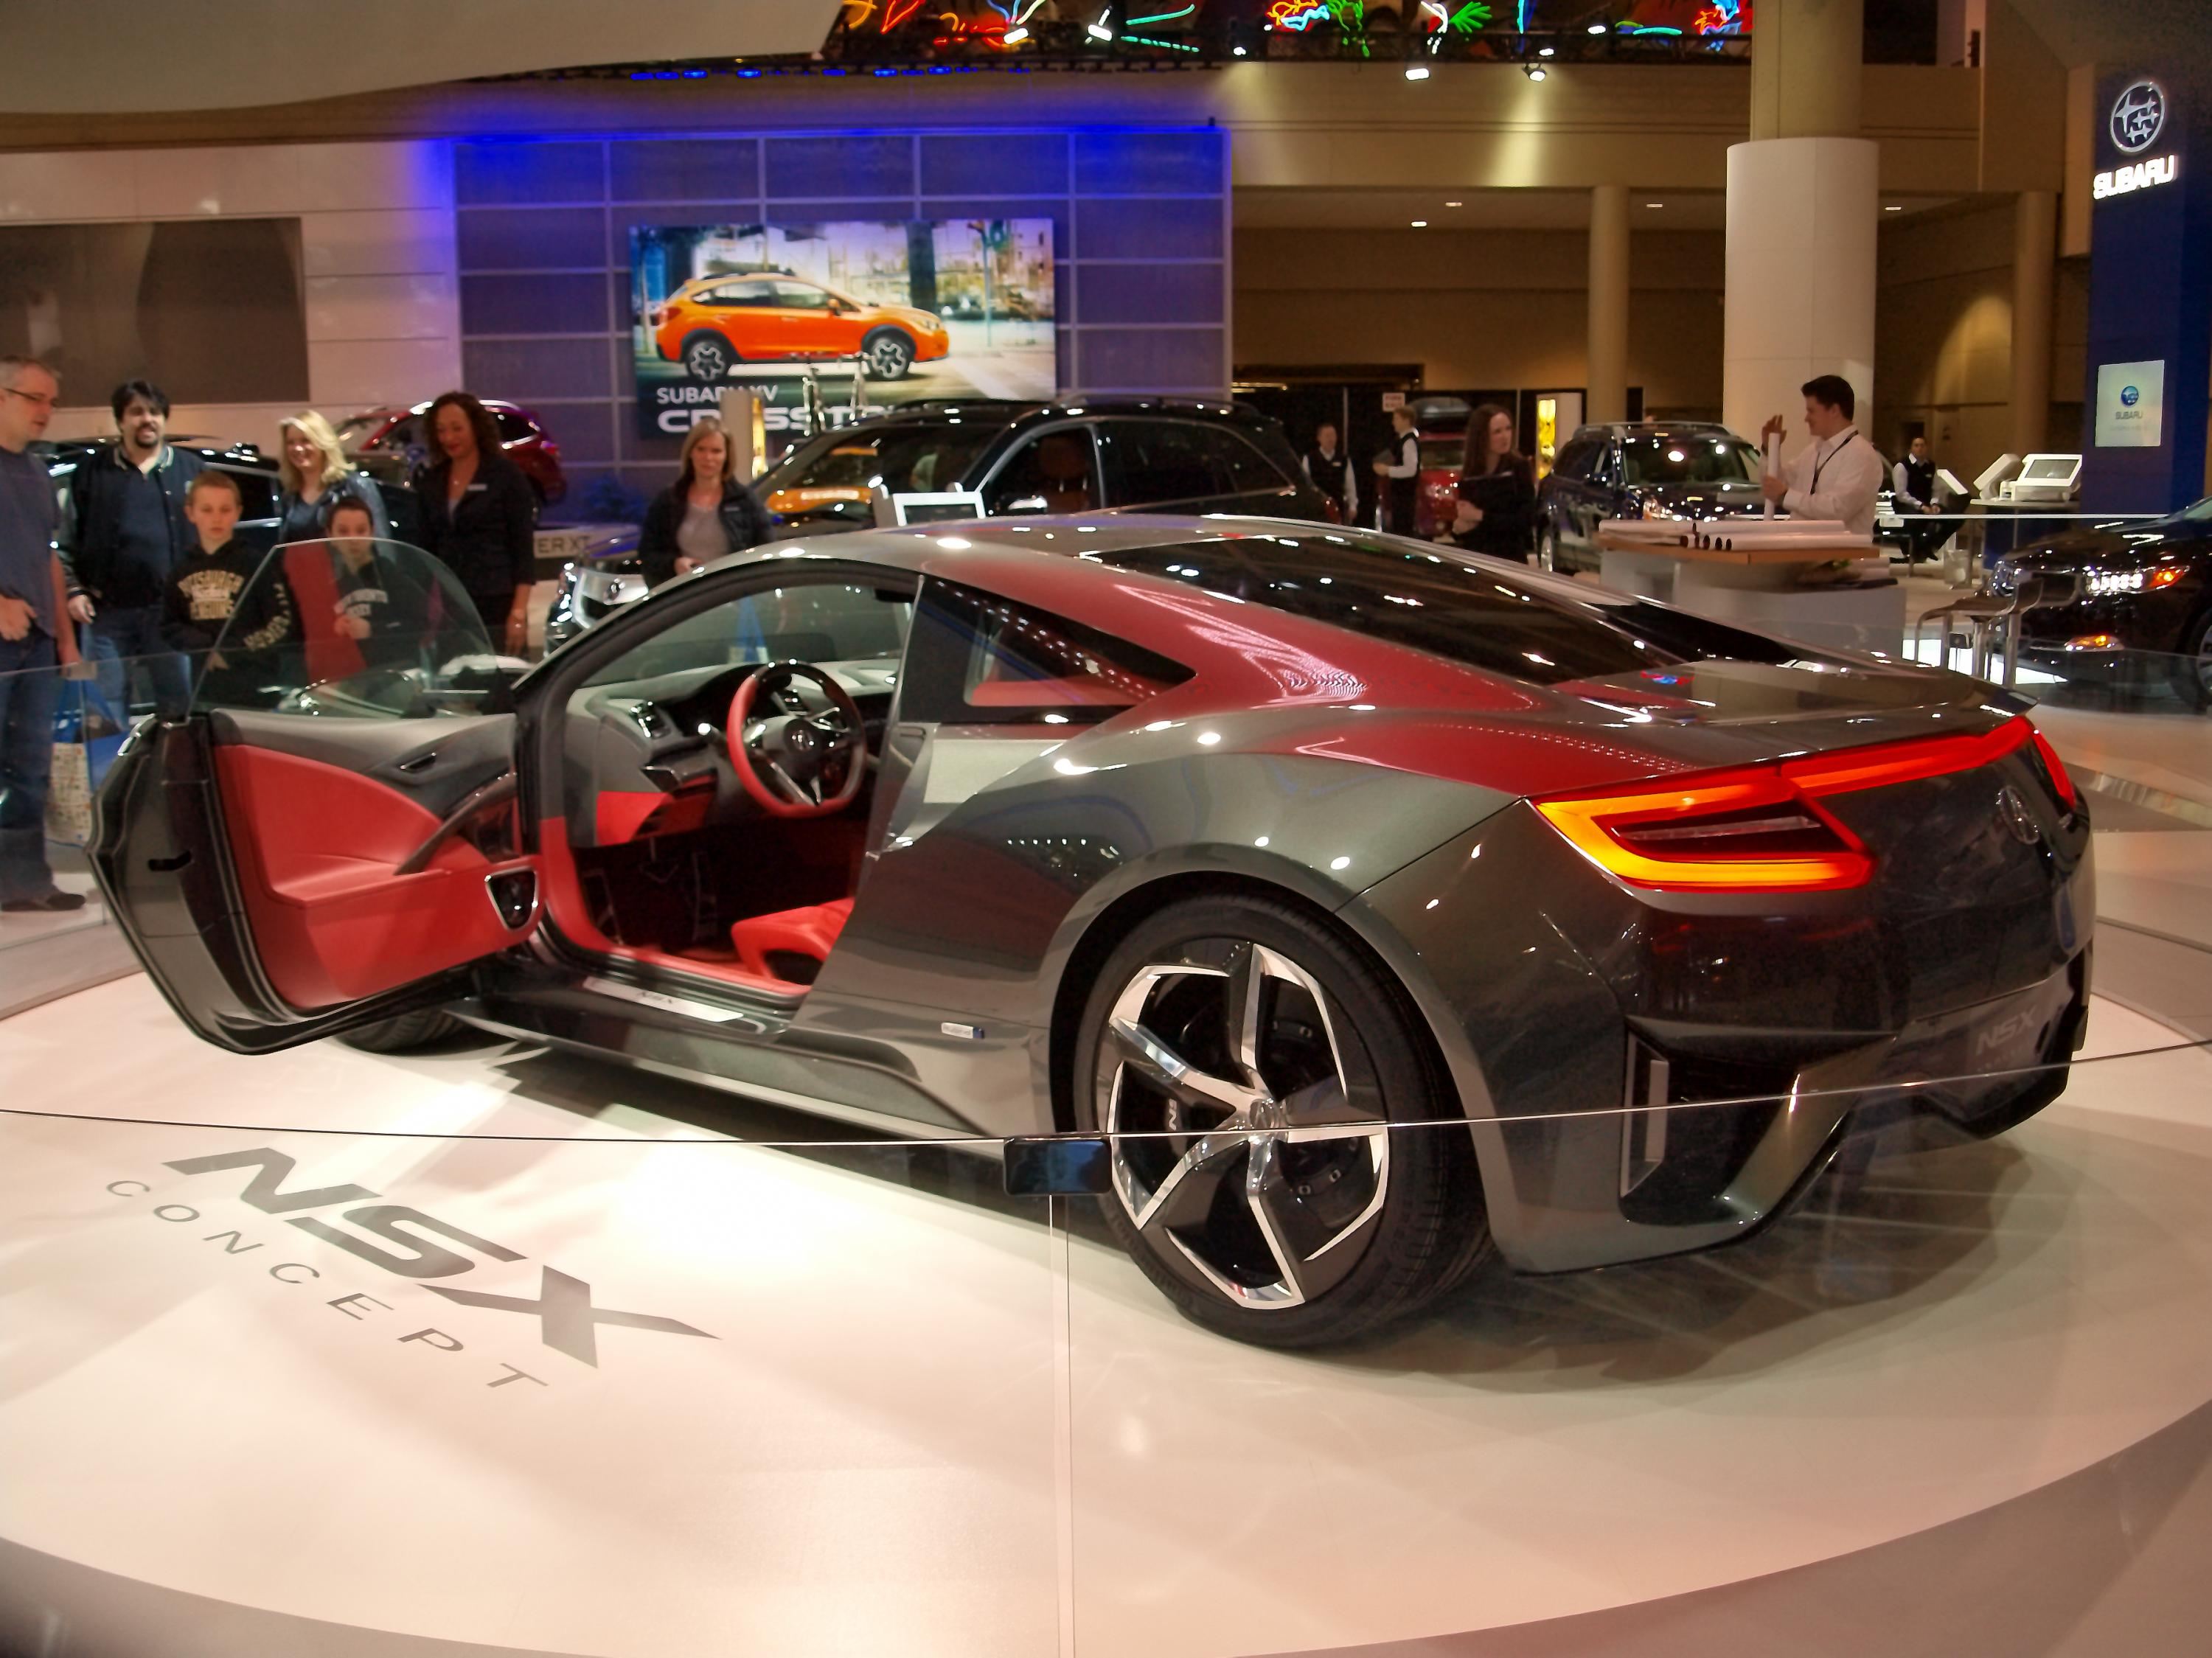 File:CIAS 2013 - Acura NSX Concept (8482347104).jpg - Wikimedia Commons